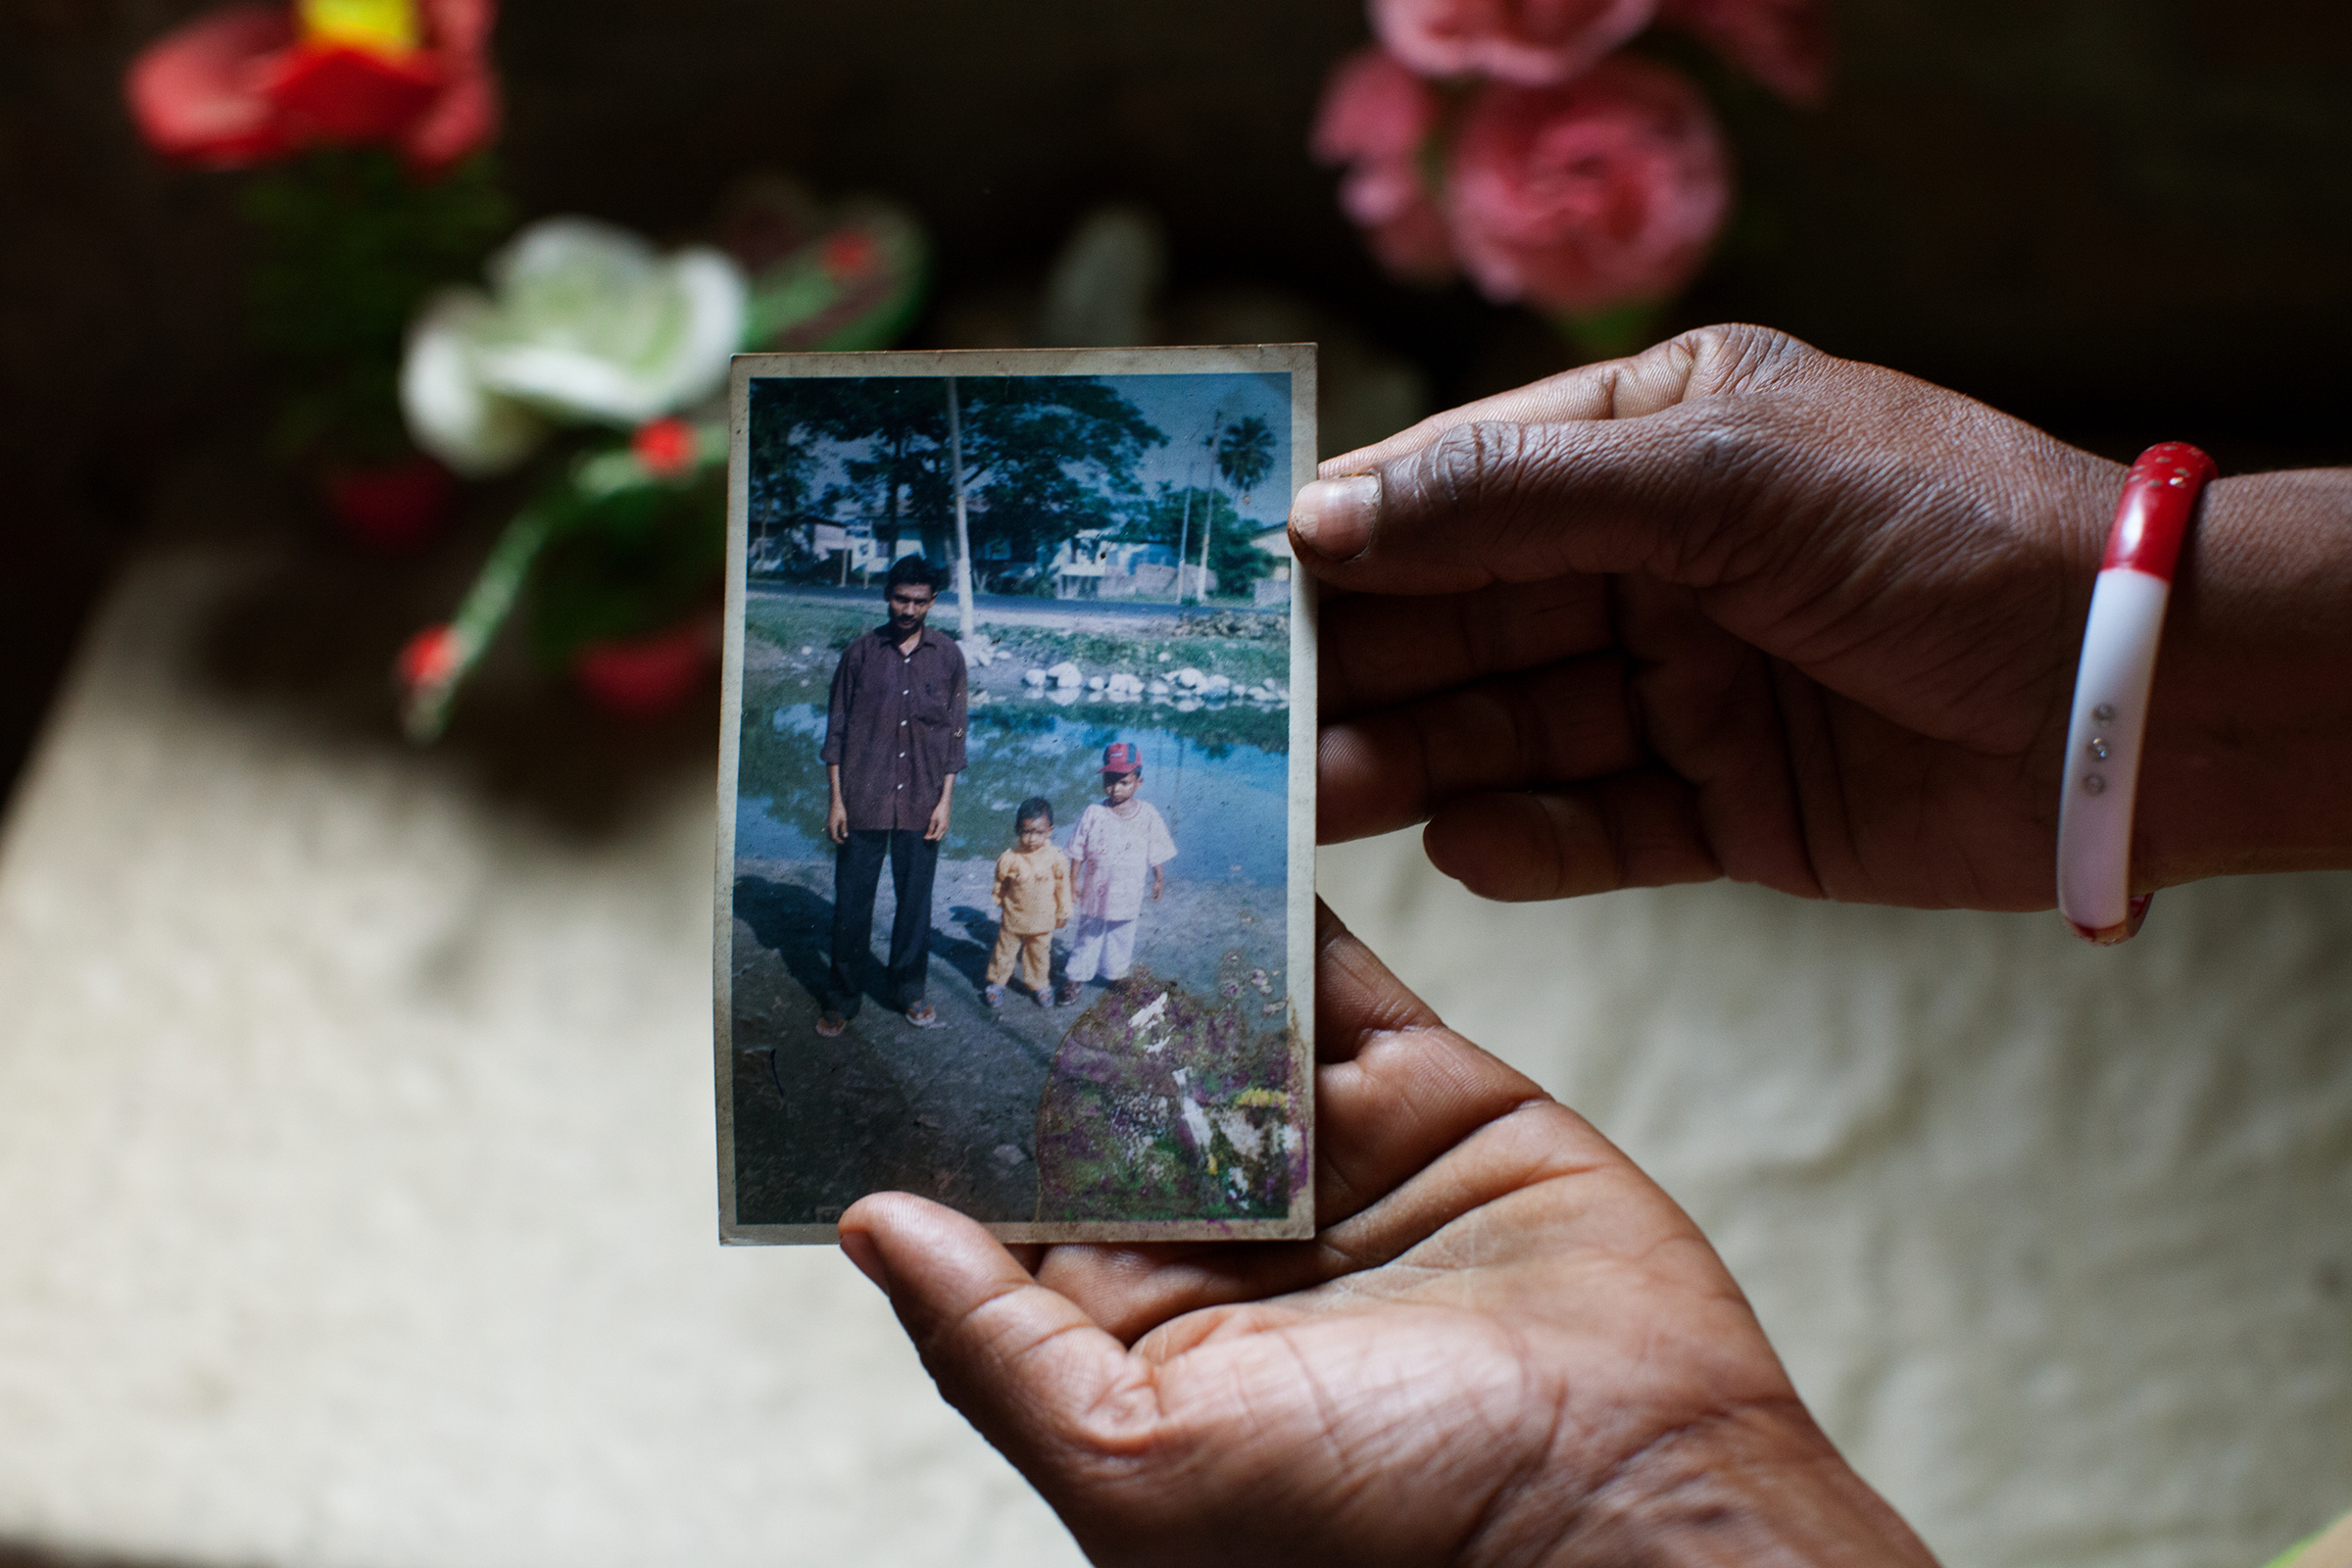 Mamtaj Begum holds the only candid photograph she has of her husband Mahuruddin, who is held in a detention center in Tezpur, Assam. Mahuruddin was photographed with his son and nephew